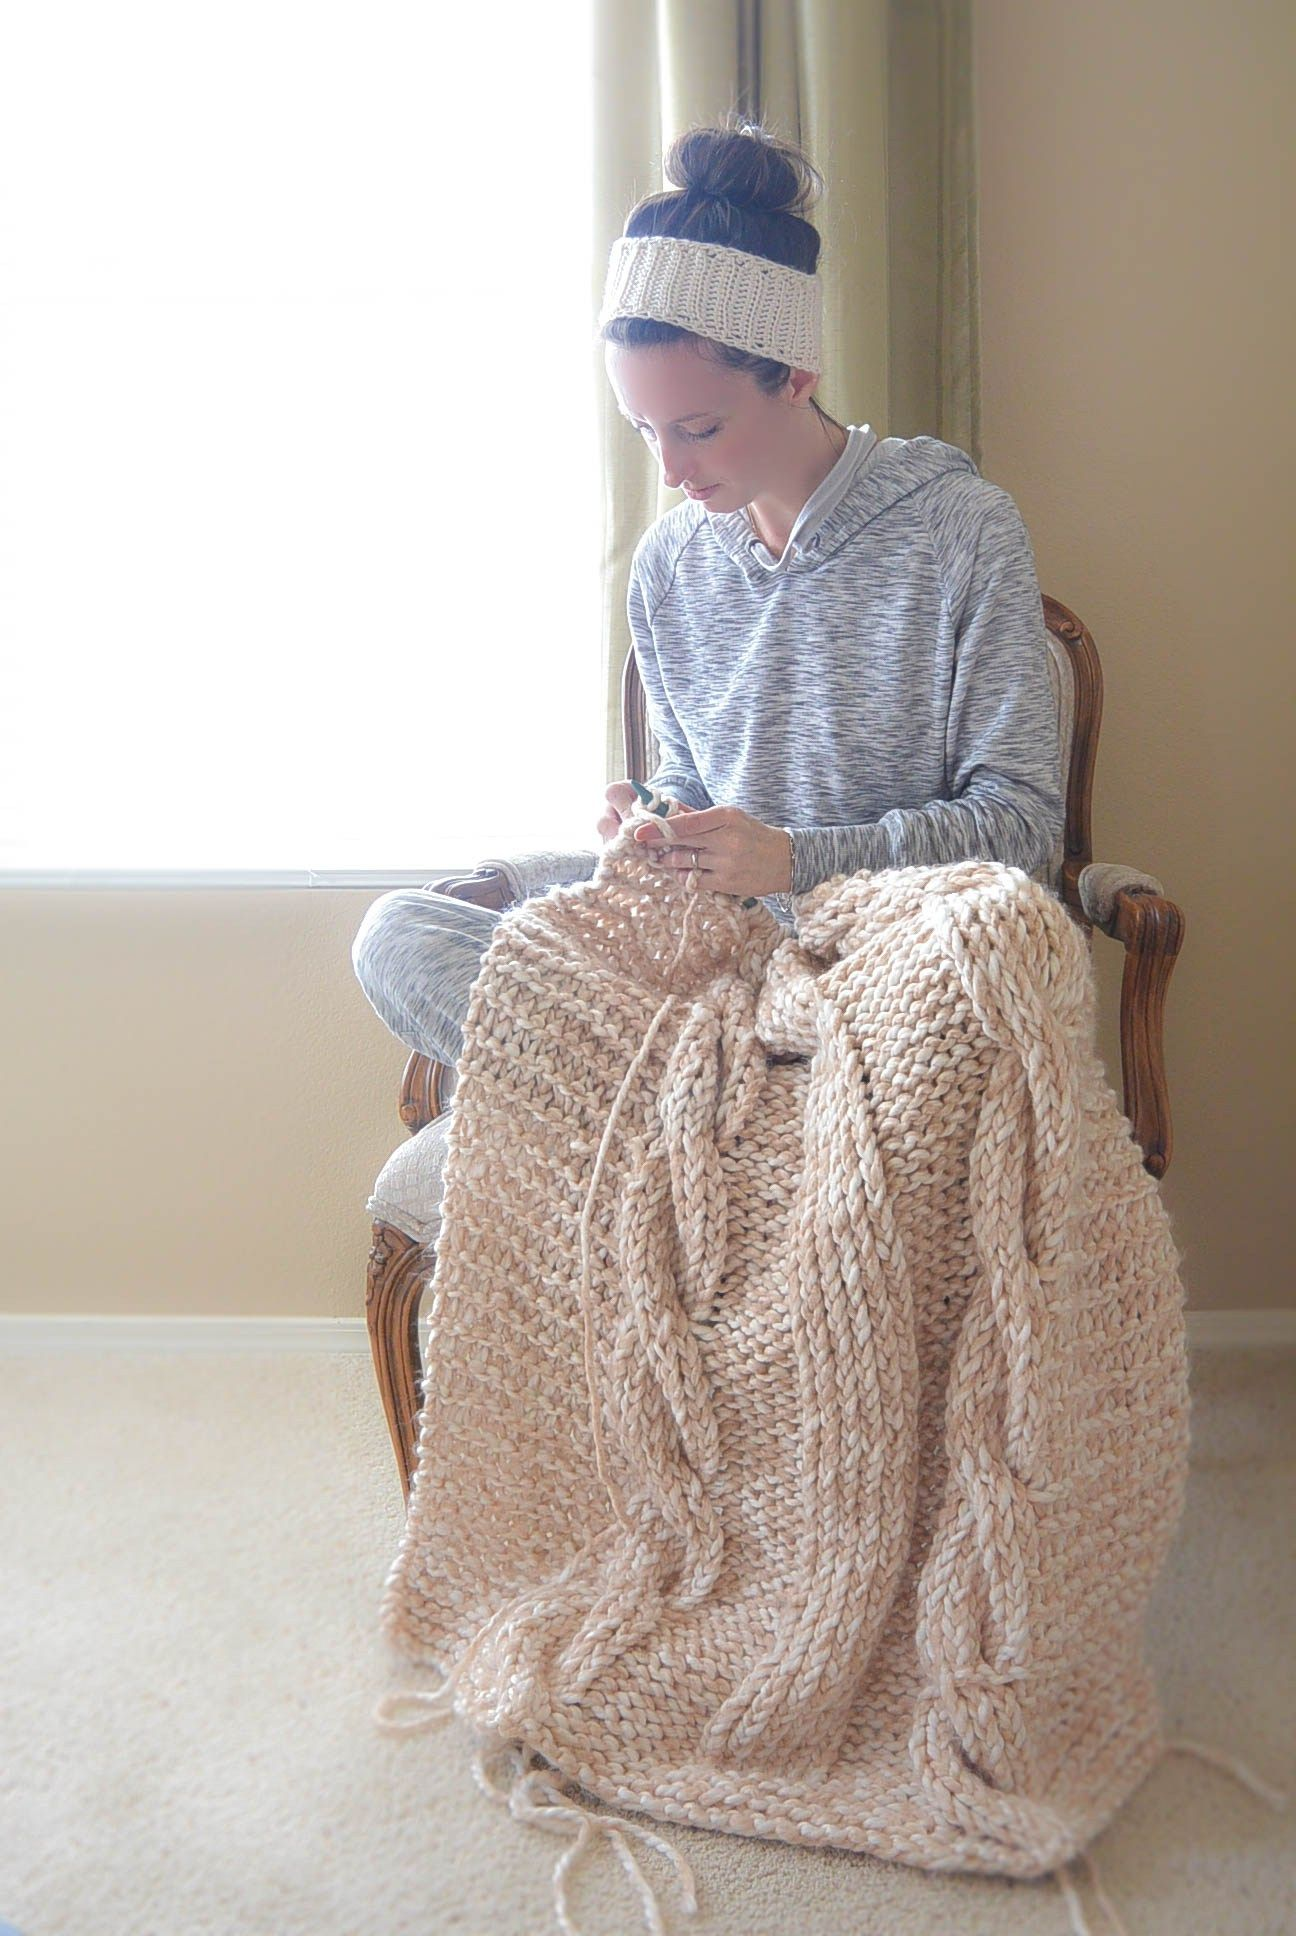 Cable knit afghan blanket pattern easy knitting knitting cable knit afghan blanket pattern easy knitting bankloansurffo Image collections